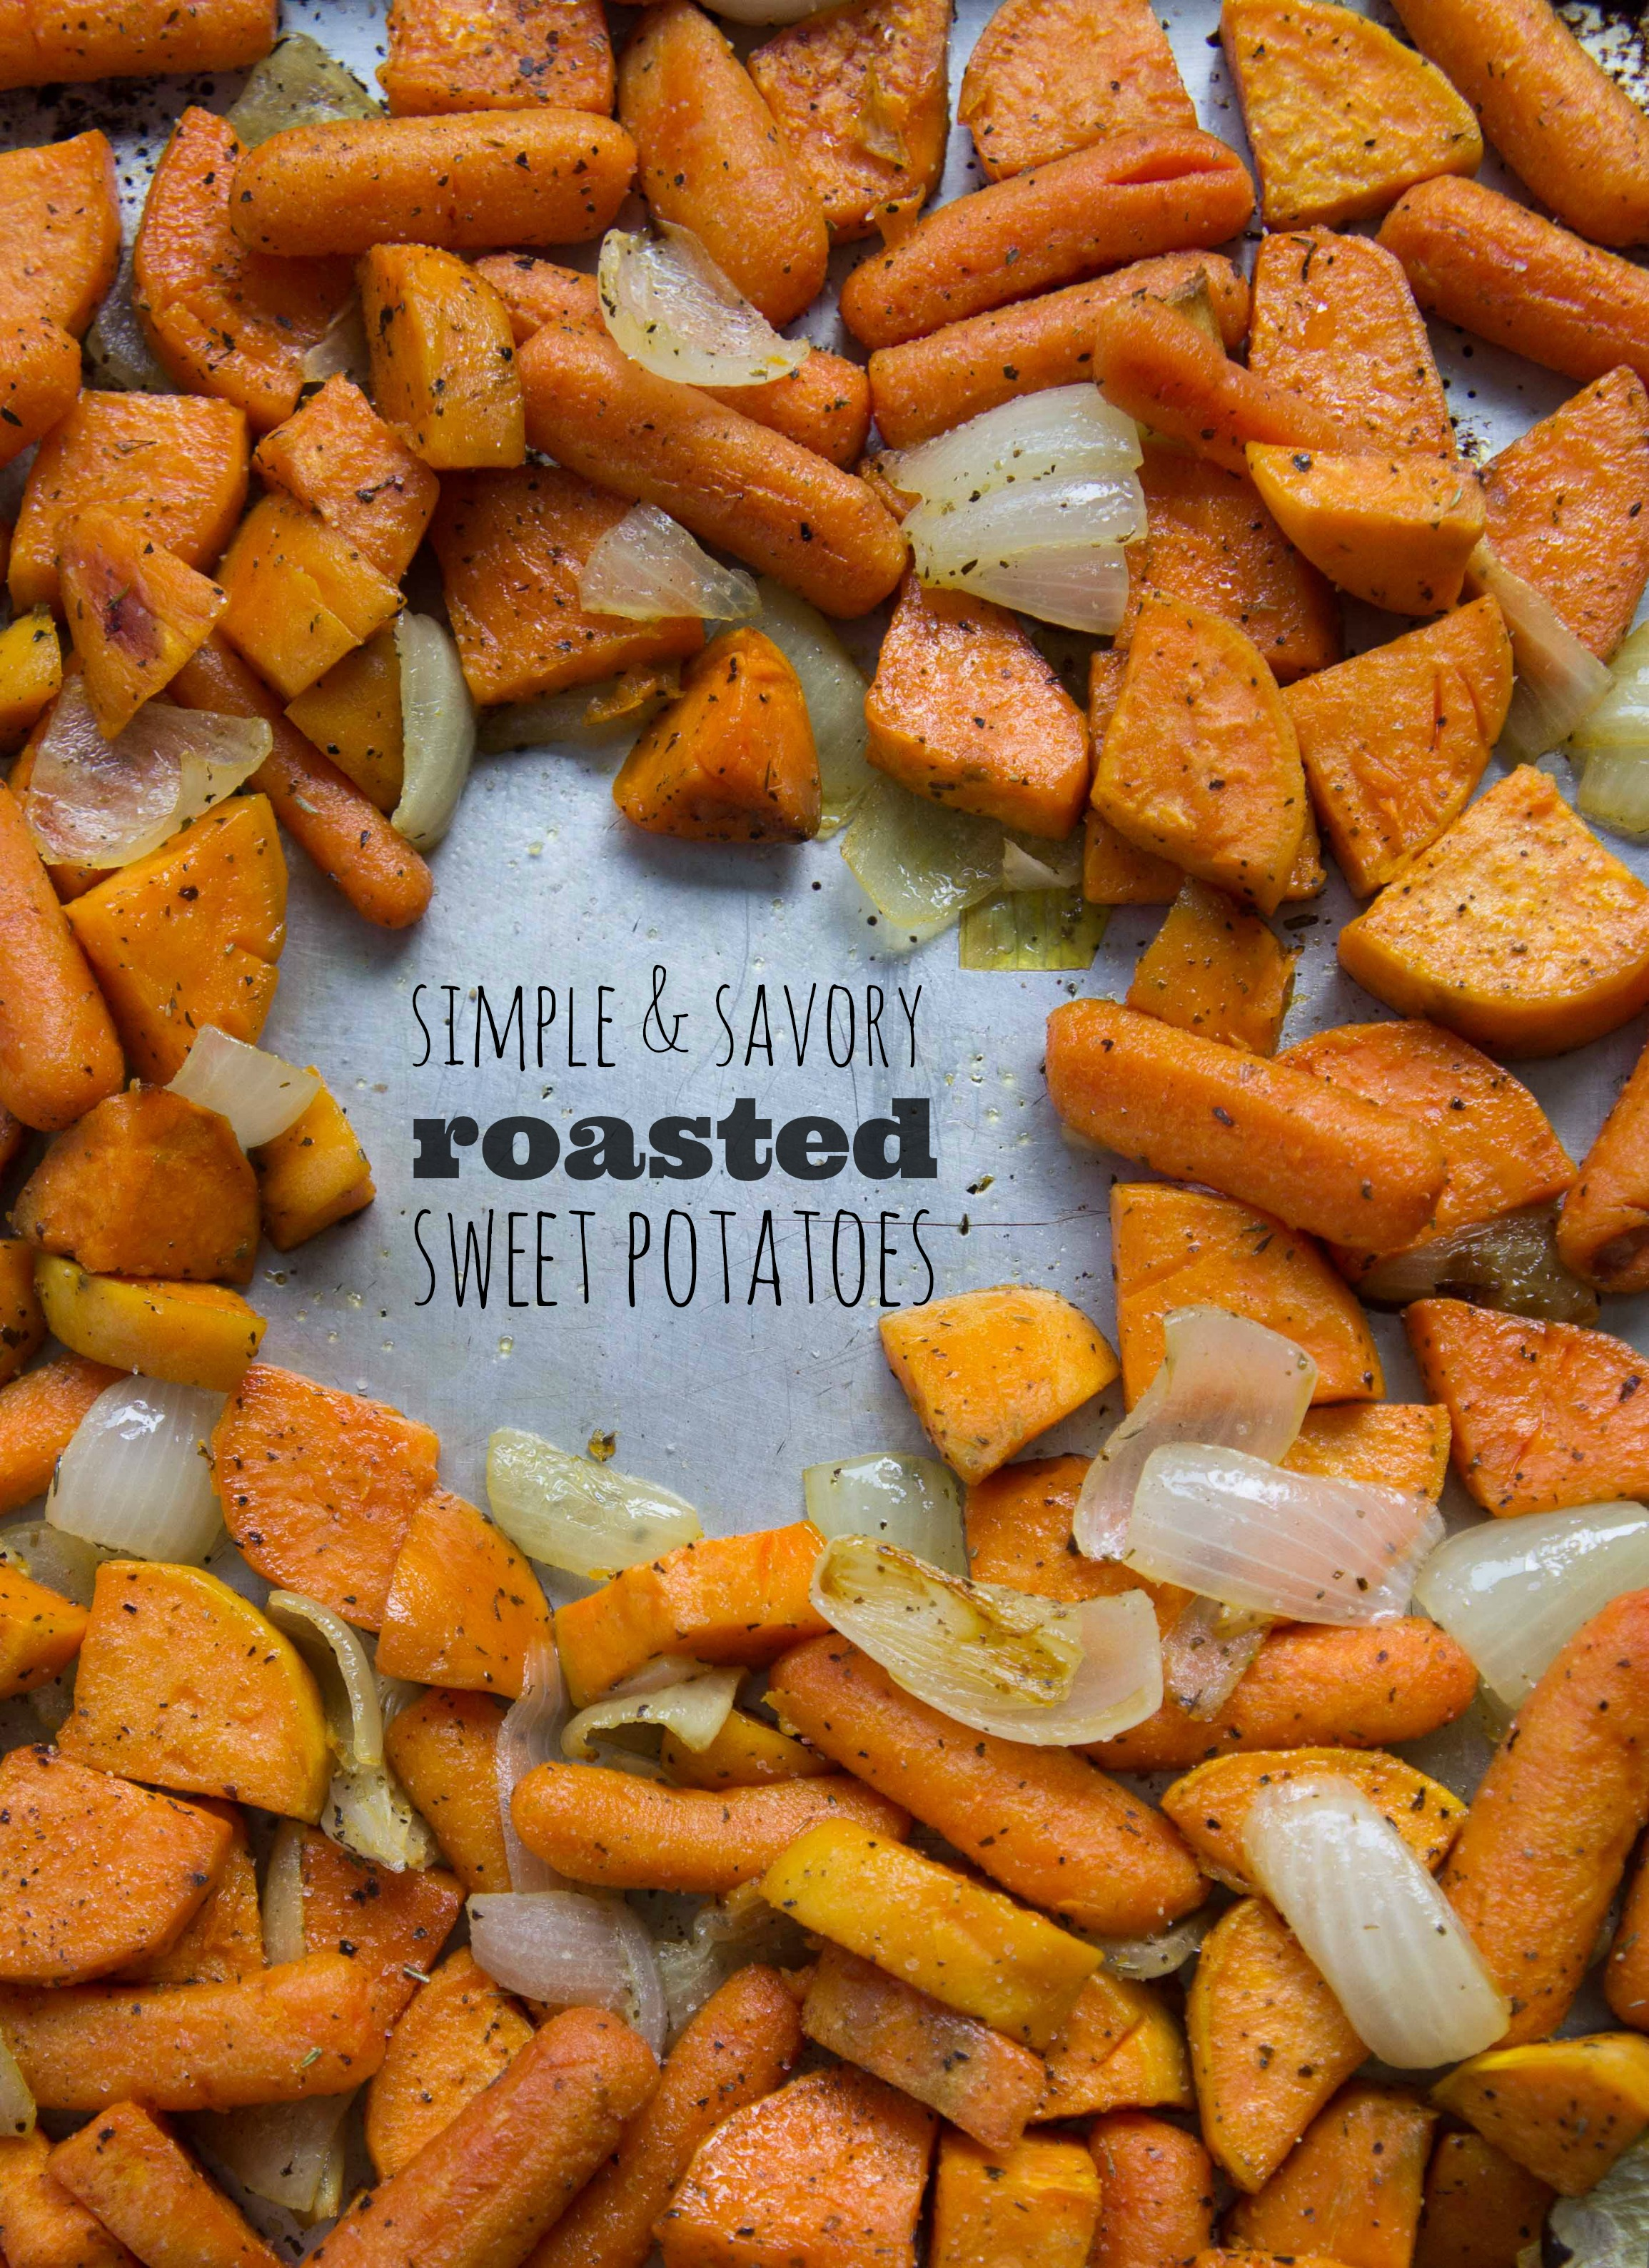 simple and savory roasted sweet potatoes and carrots i